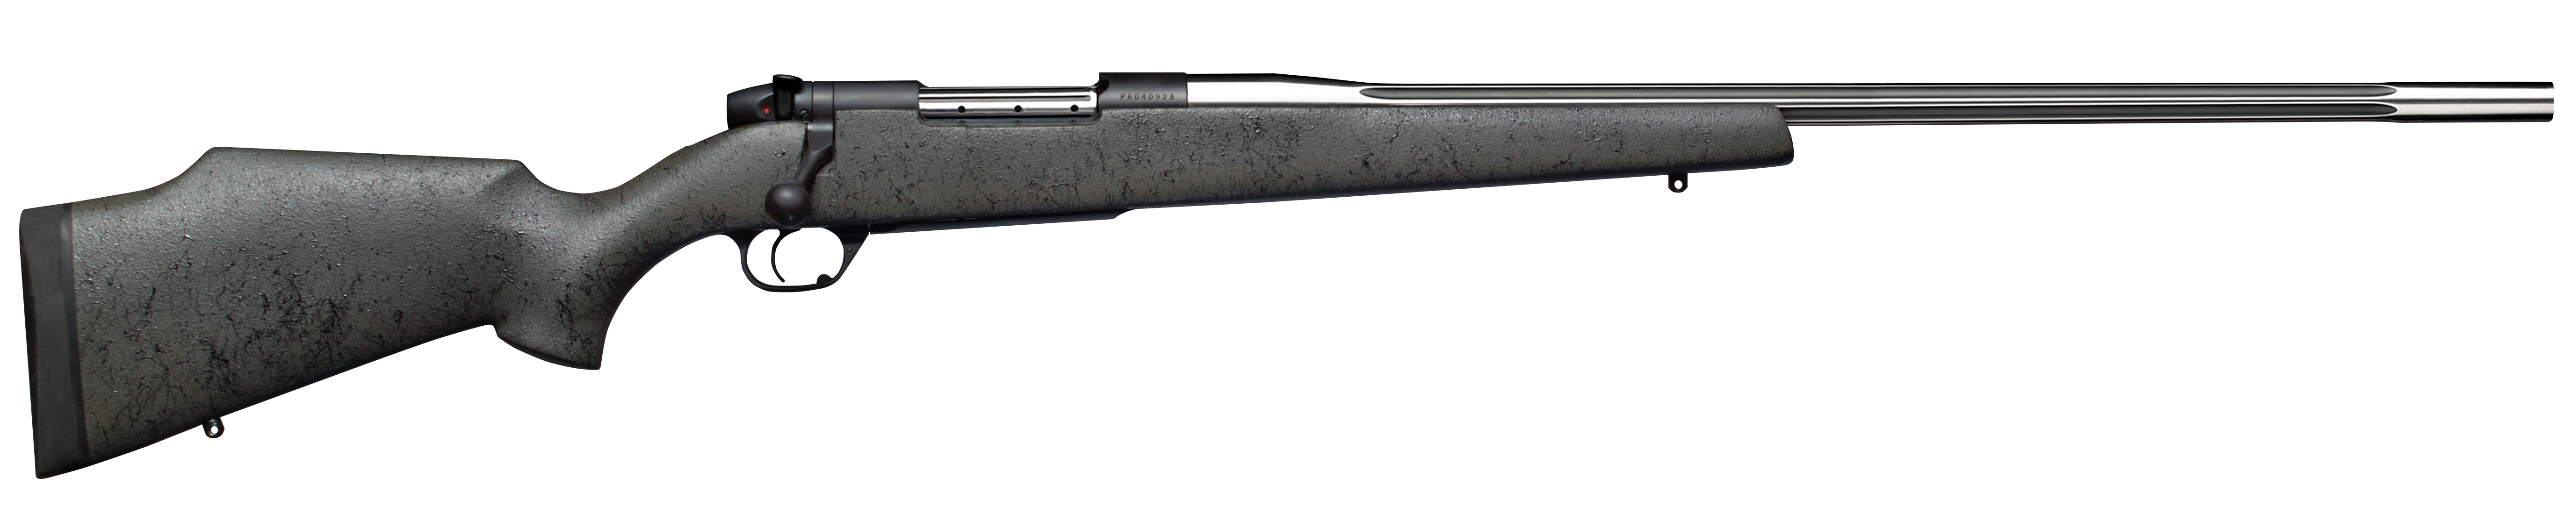 weatherby mark v accumark review